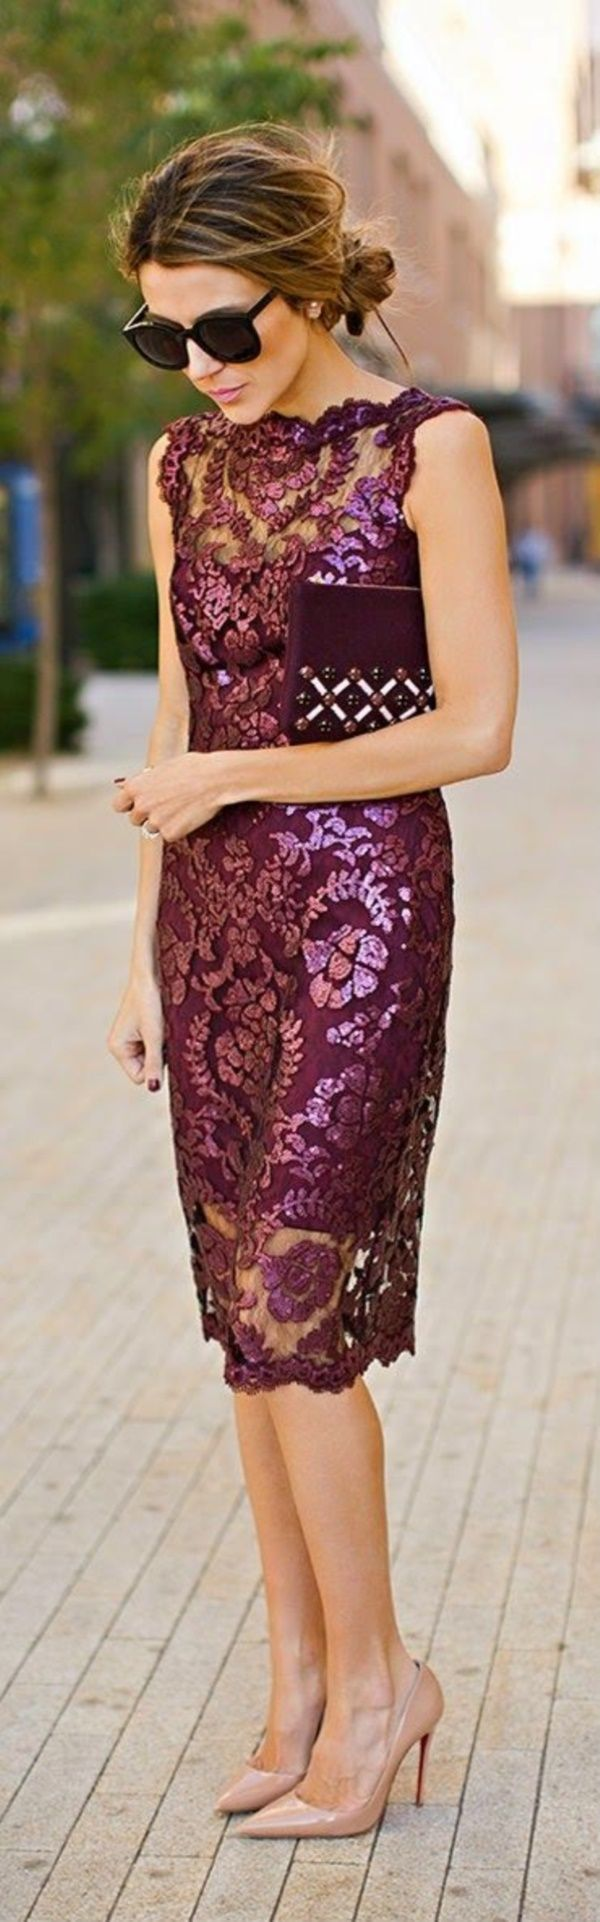 Wine Color Outfits to Stay Romantic This year0301